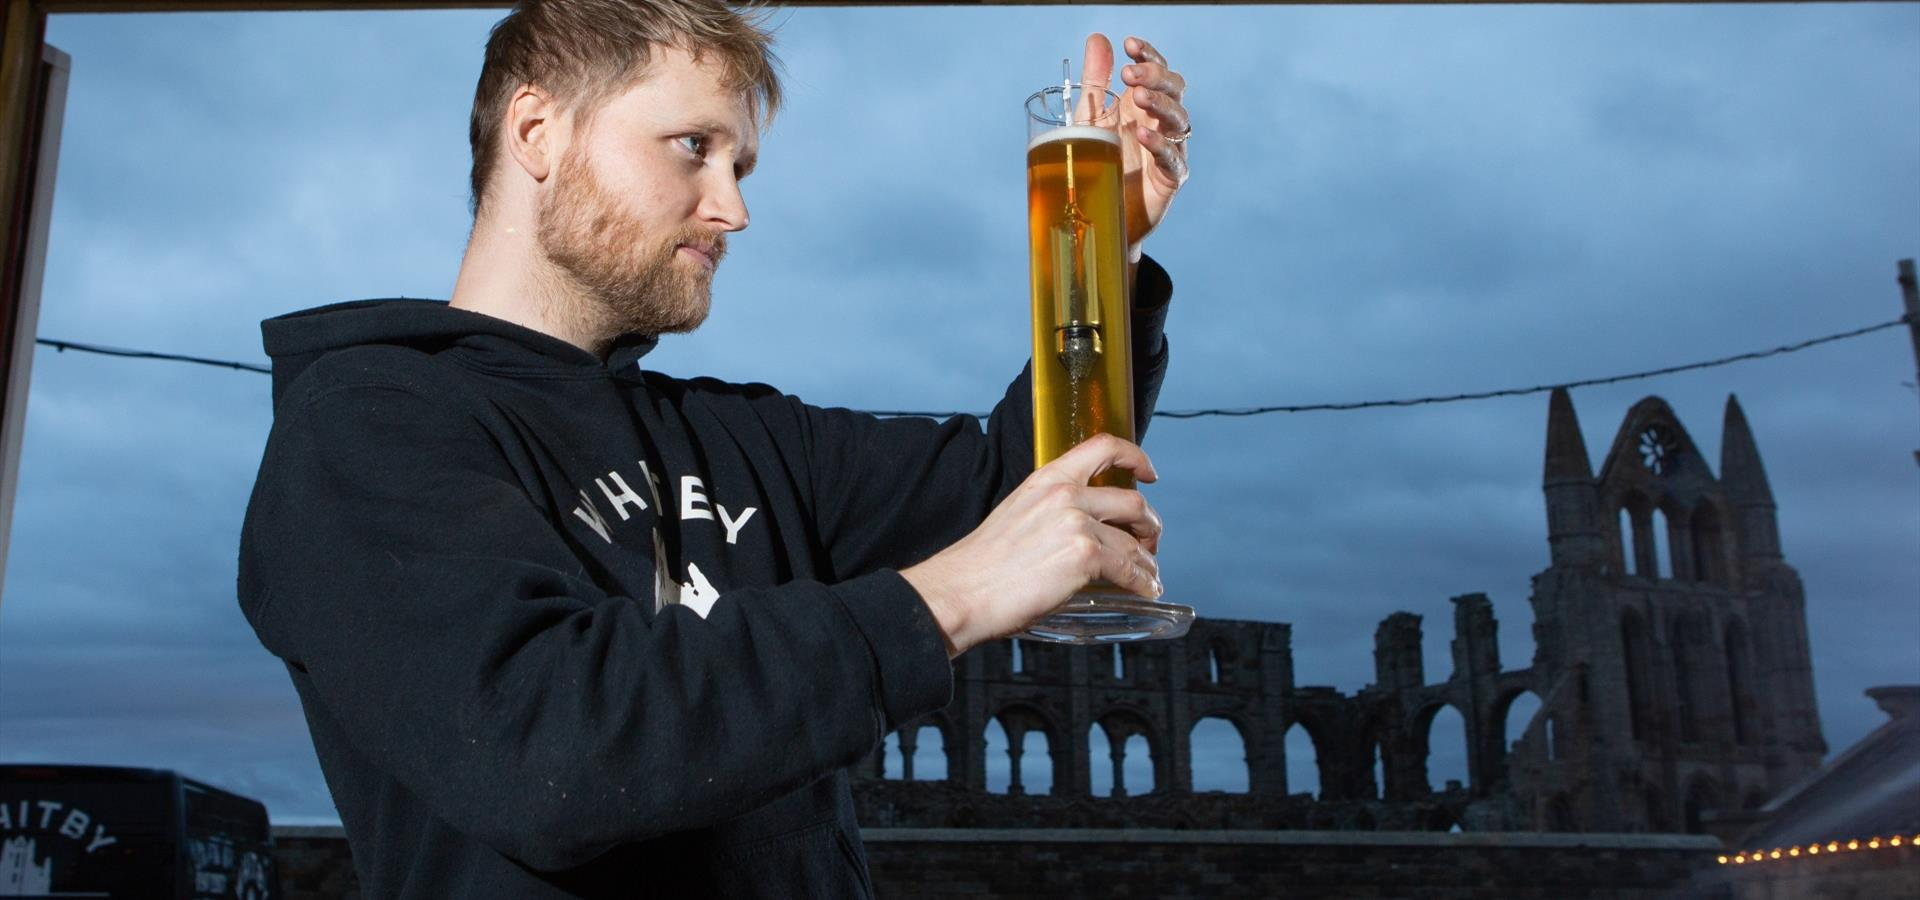 An image of a man holding a beer at Whitby Brewery with Whitby Abbey in the background by Duncan Lomax